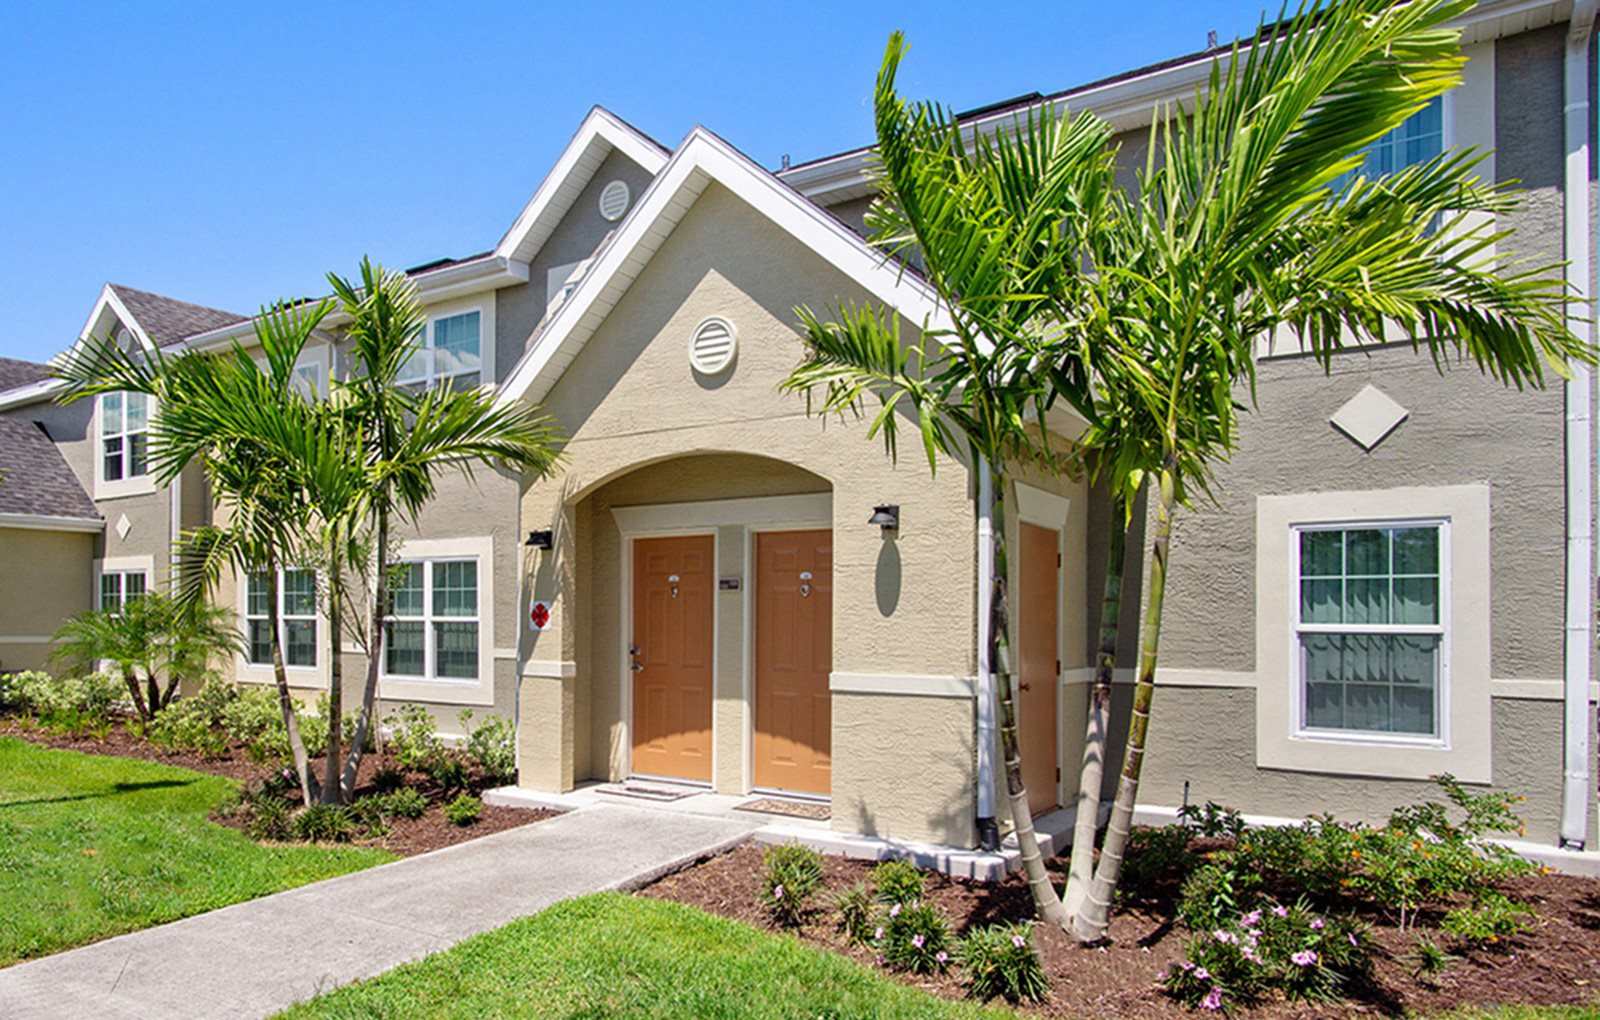 Seven Palms Apartments | Apartments in Punta Gorda, FL